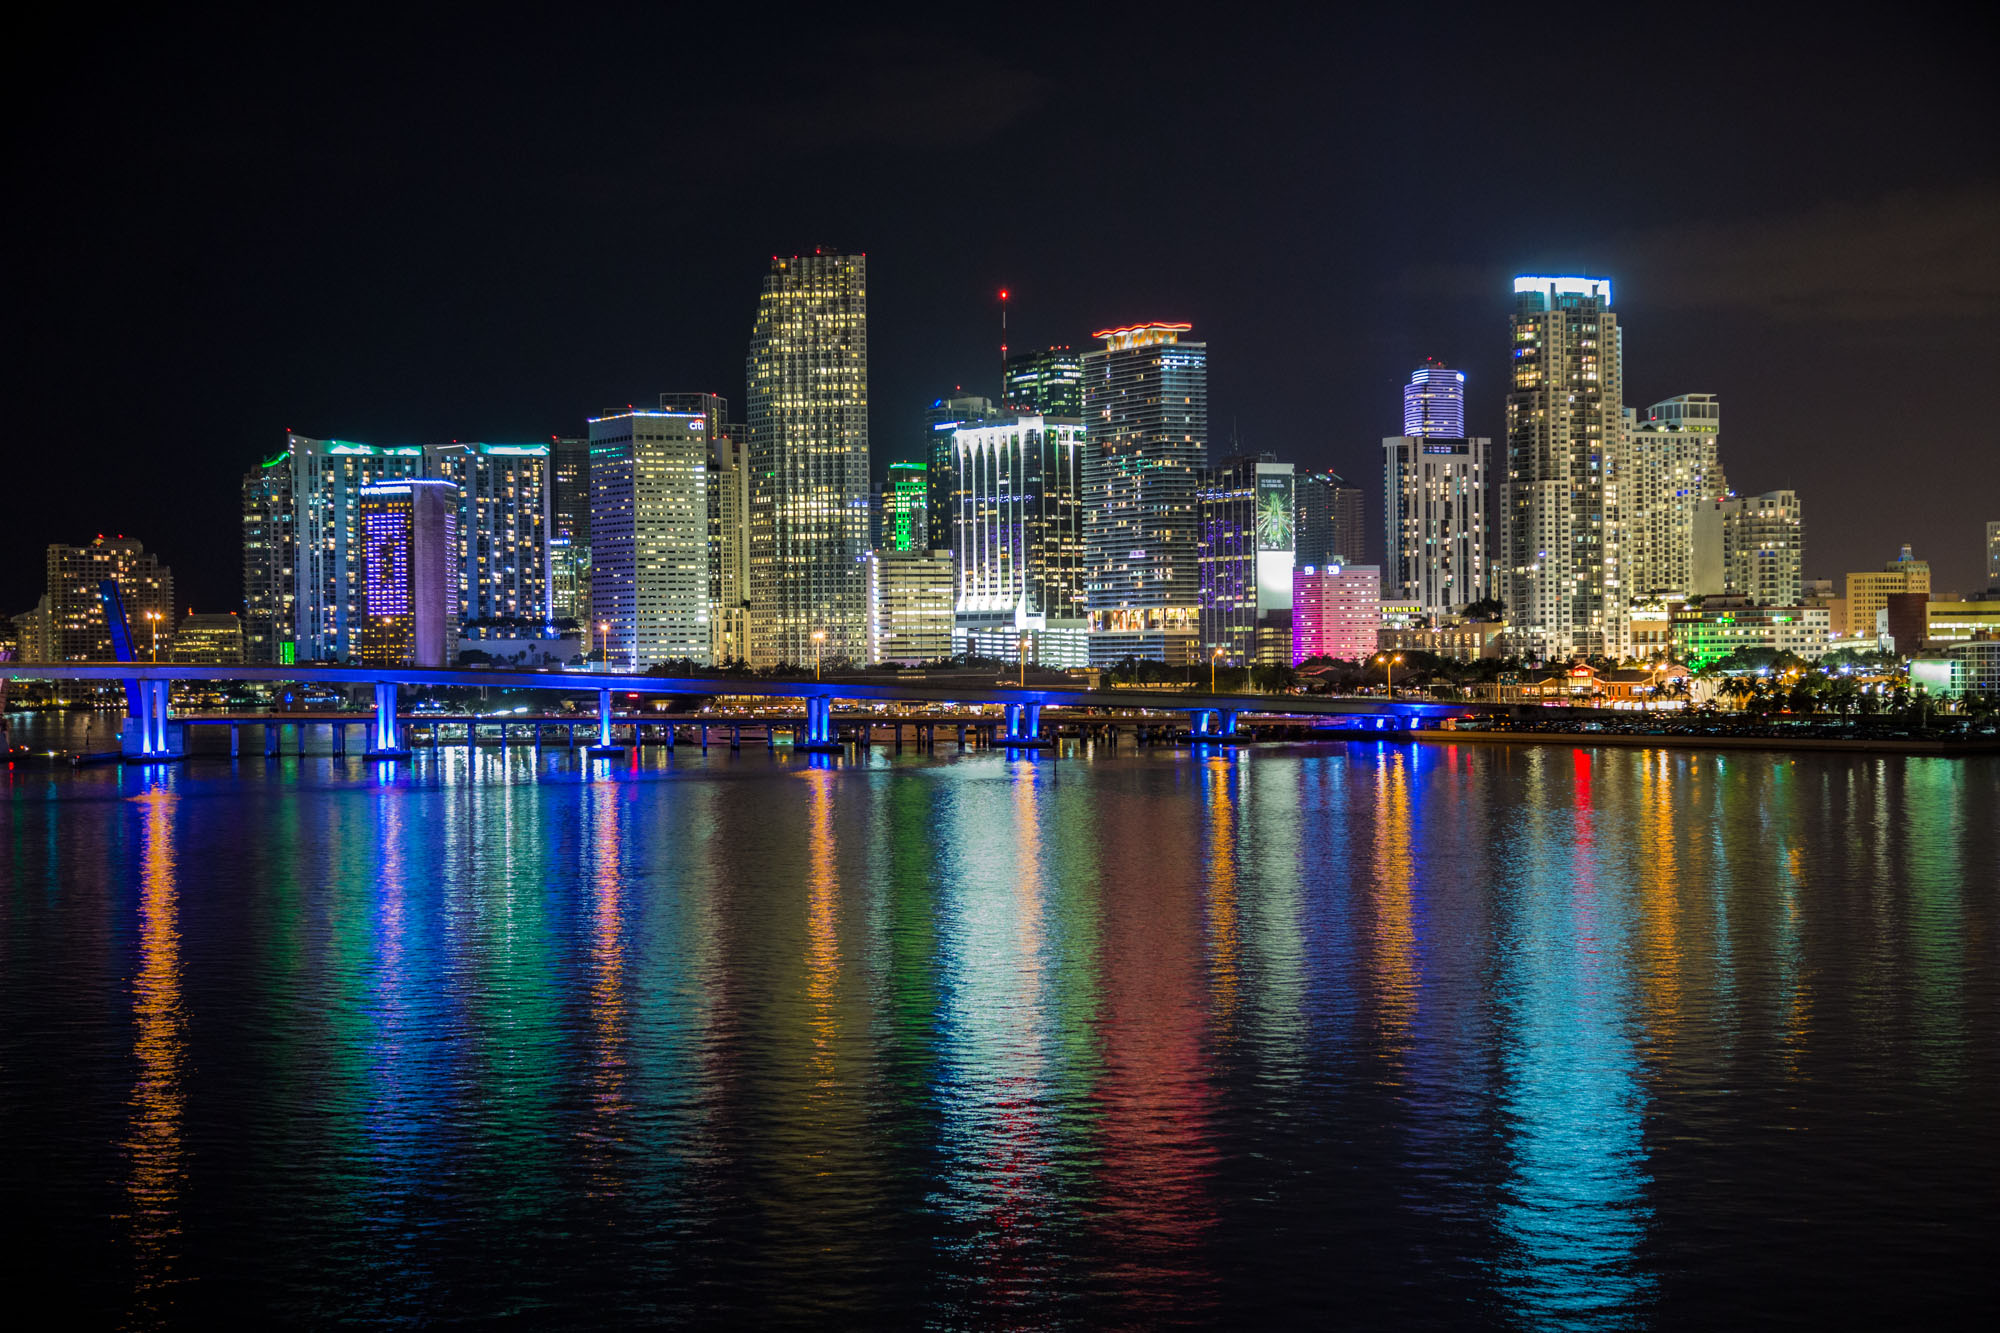 long exposure night photography of downtown Miami skyline at night illuminated by Biscayne Bay in Florida USA